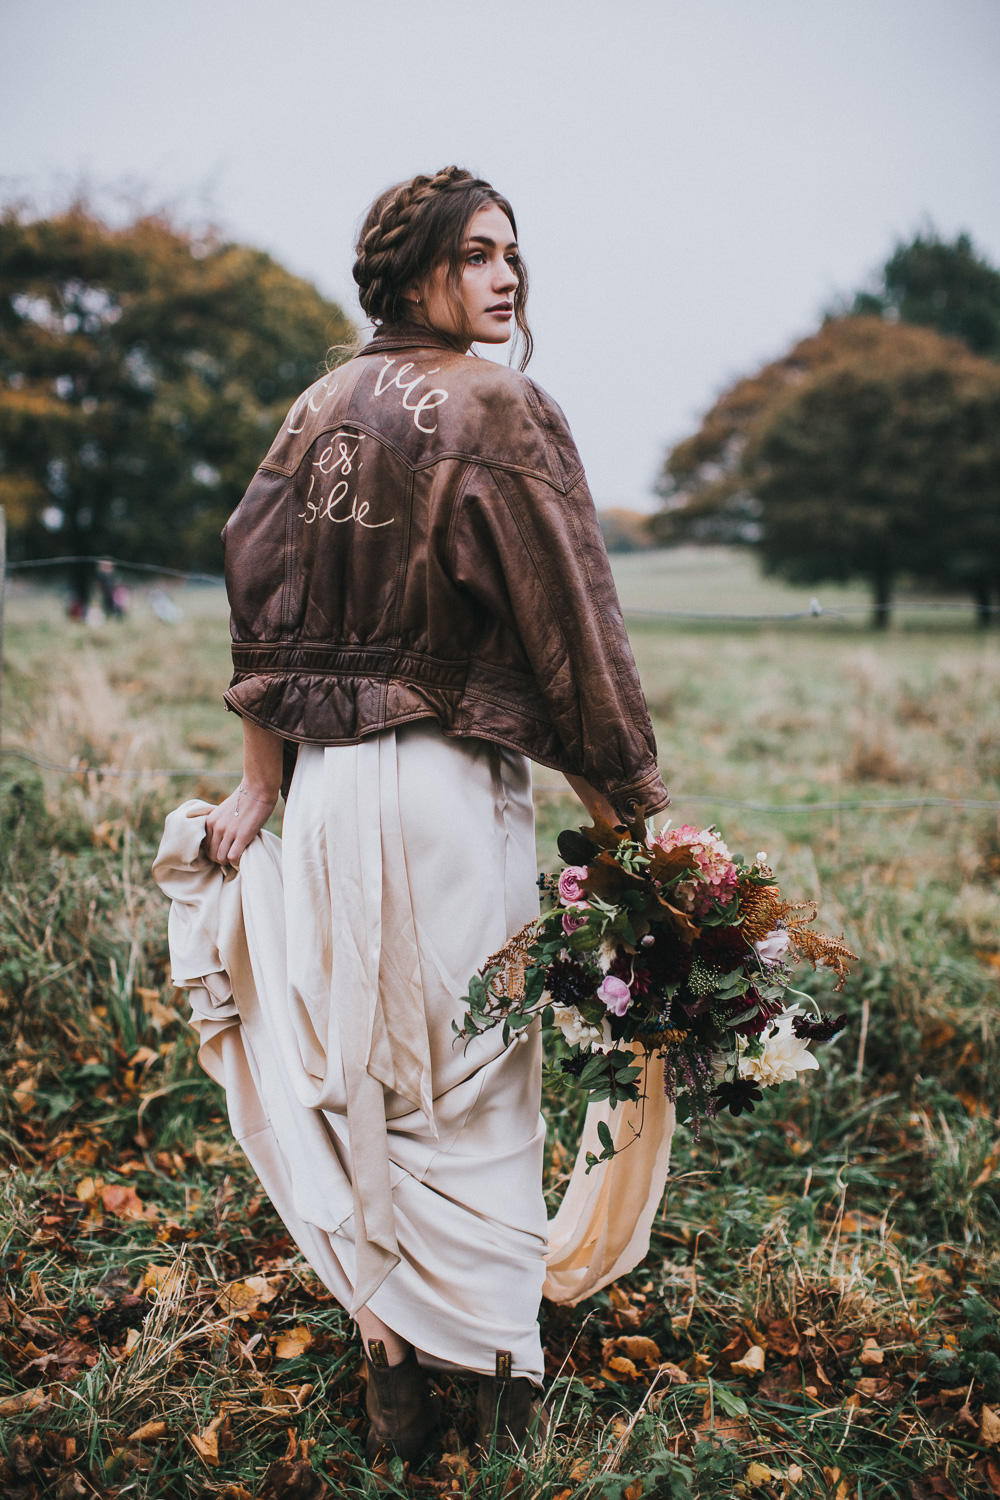 10 Tips For Pulling Off An Awe-Inspiring Autumn Wedding